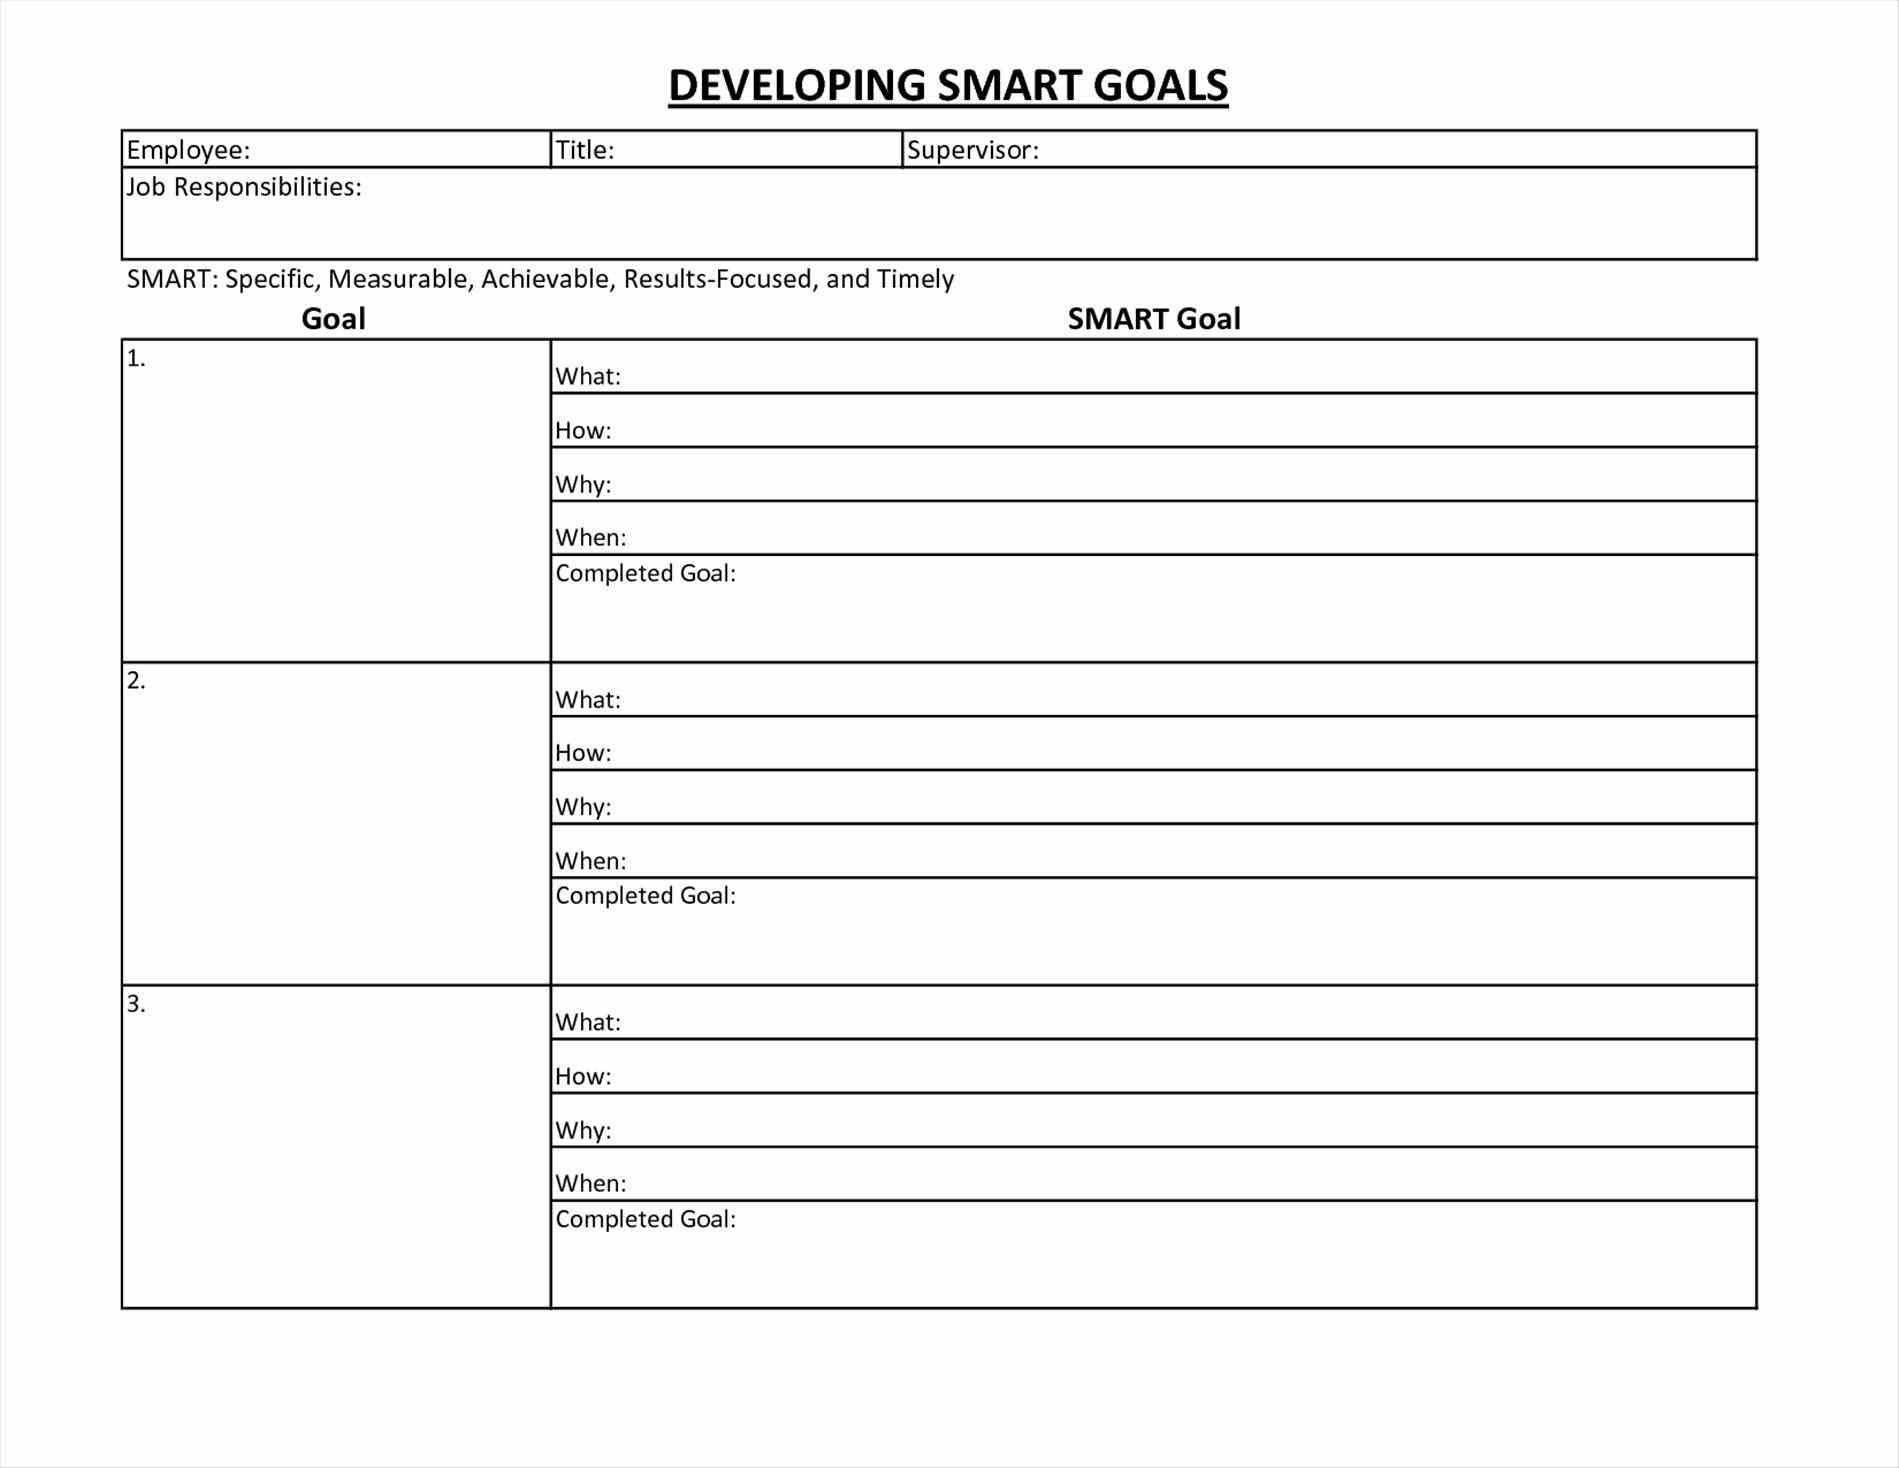 Worksheets Academic Goal Setting Worksheet pictures goal setting template excel smart goals worksheet newpcairport pdf personal sheet worksheets